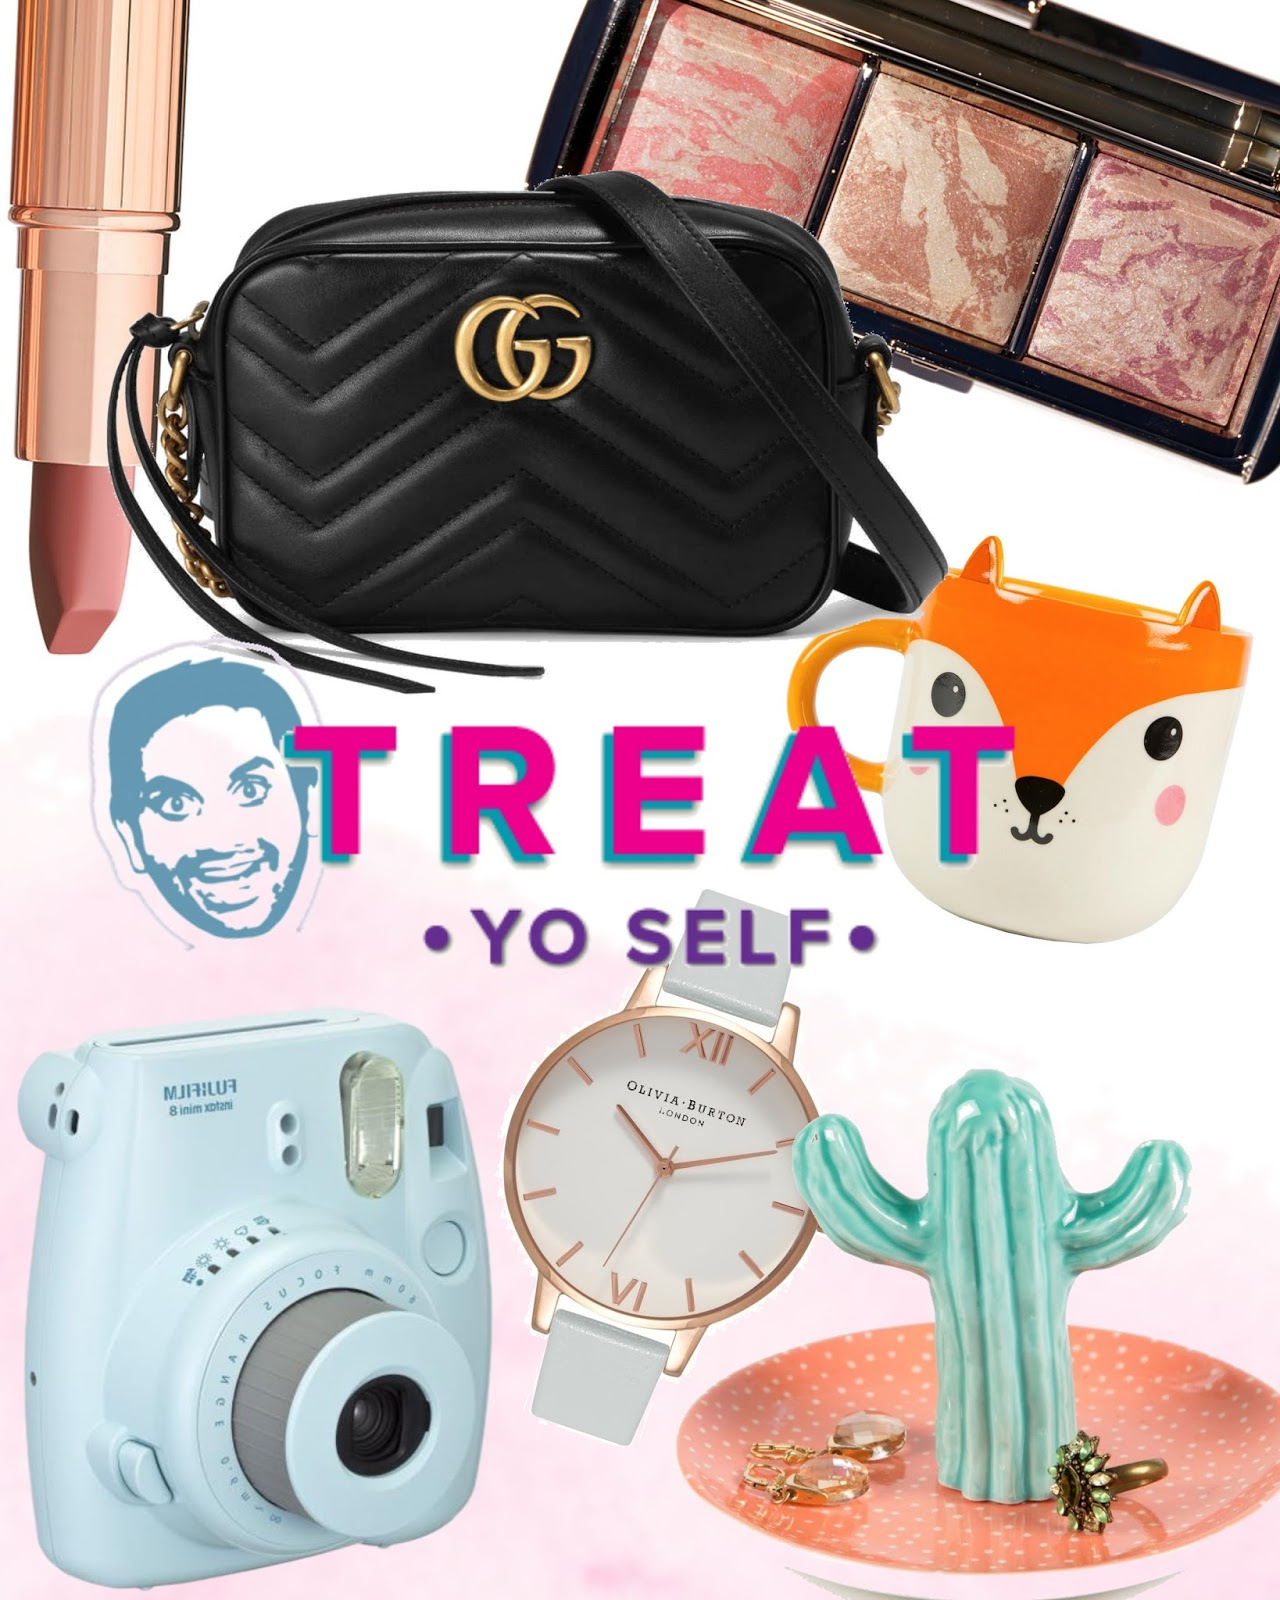 The Valentine's Day Treat Yo Self Guide